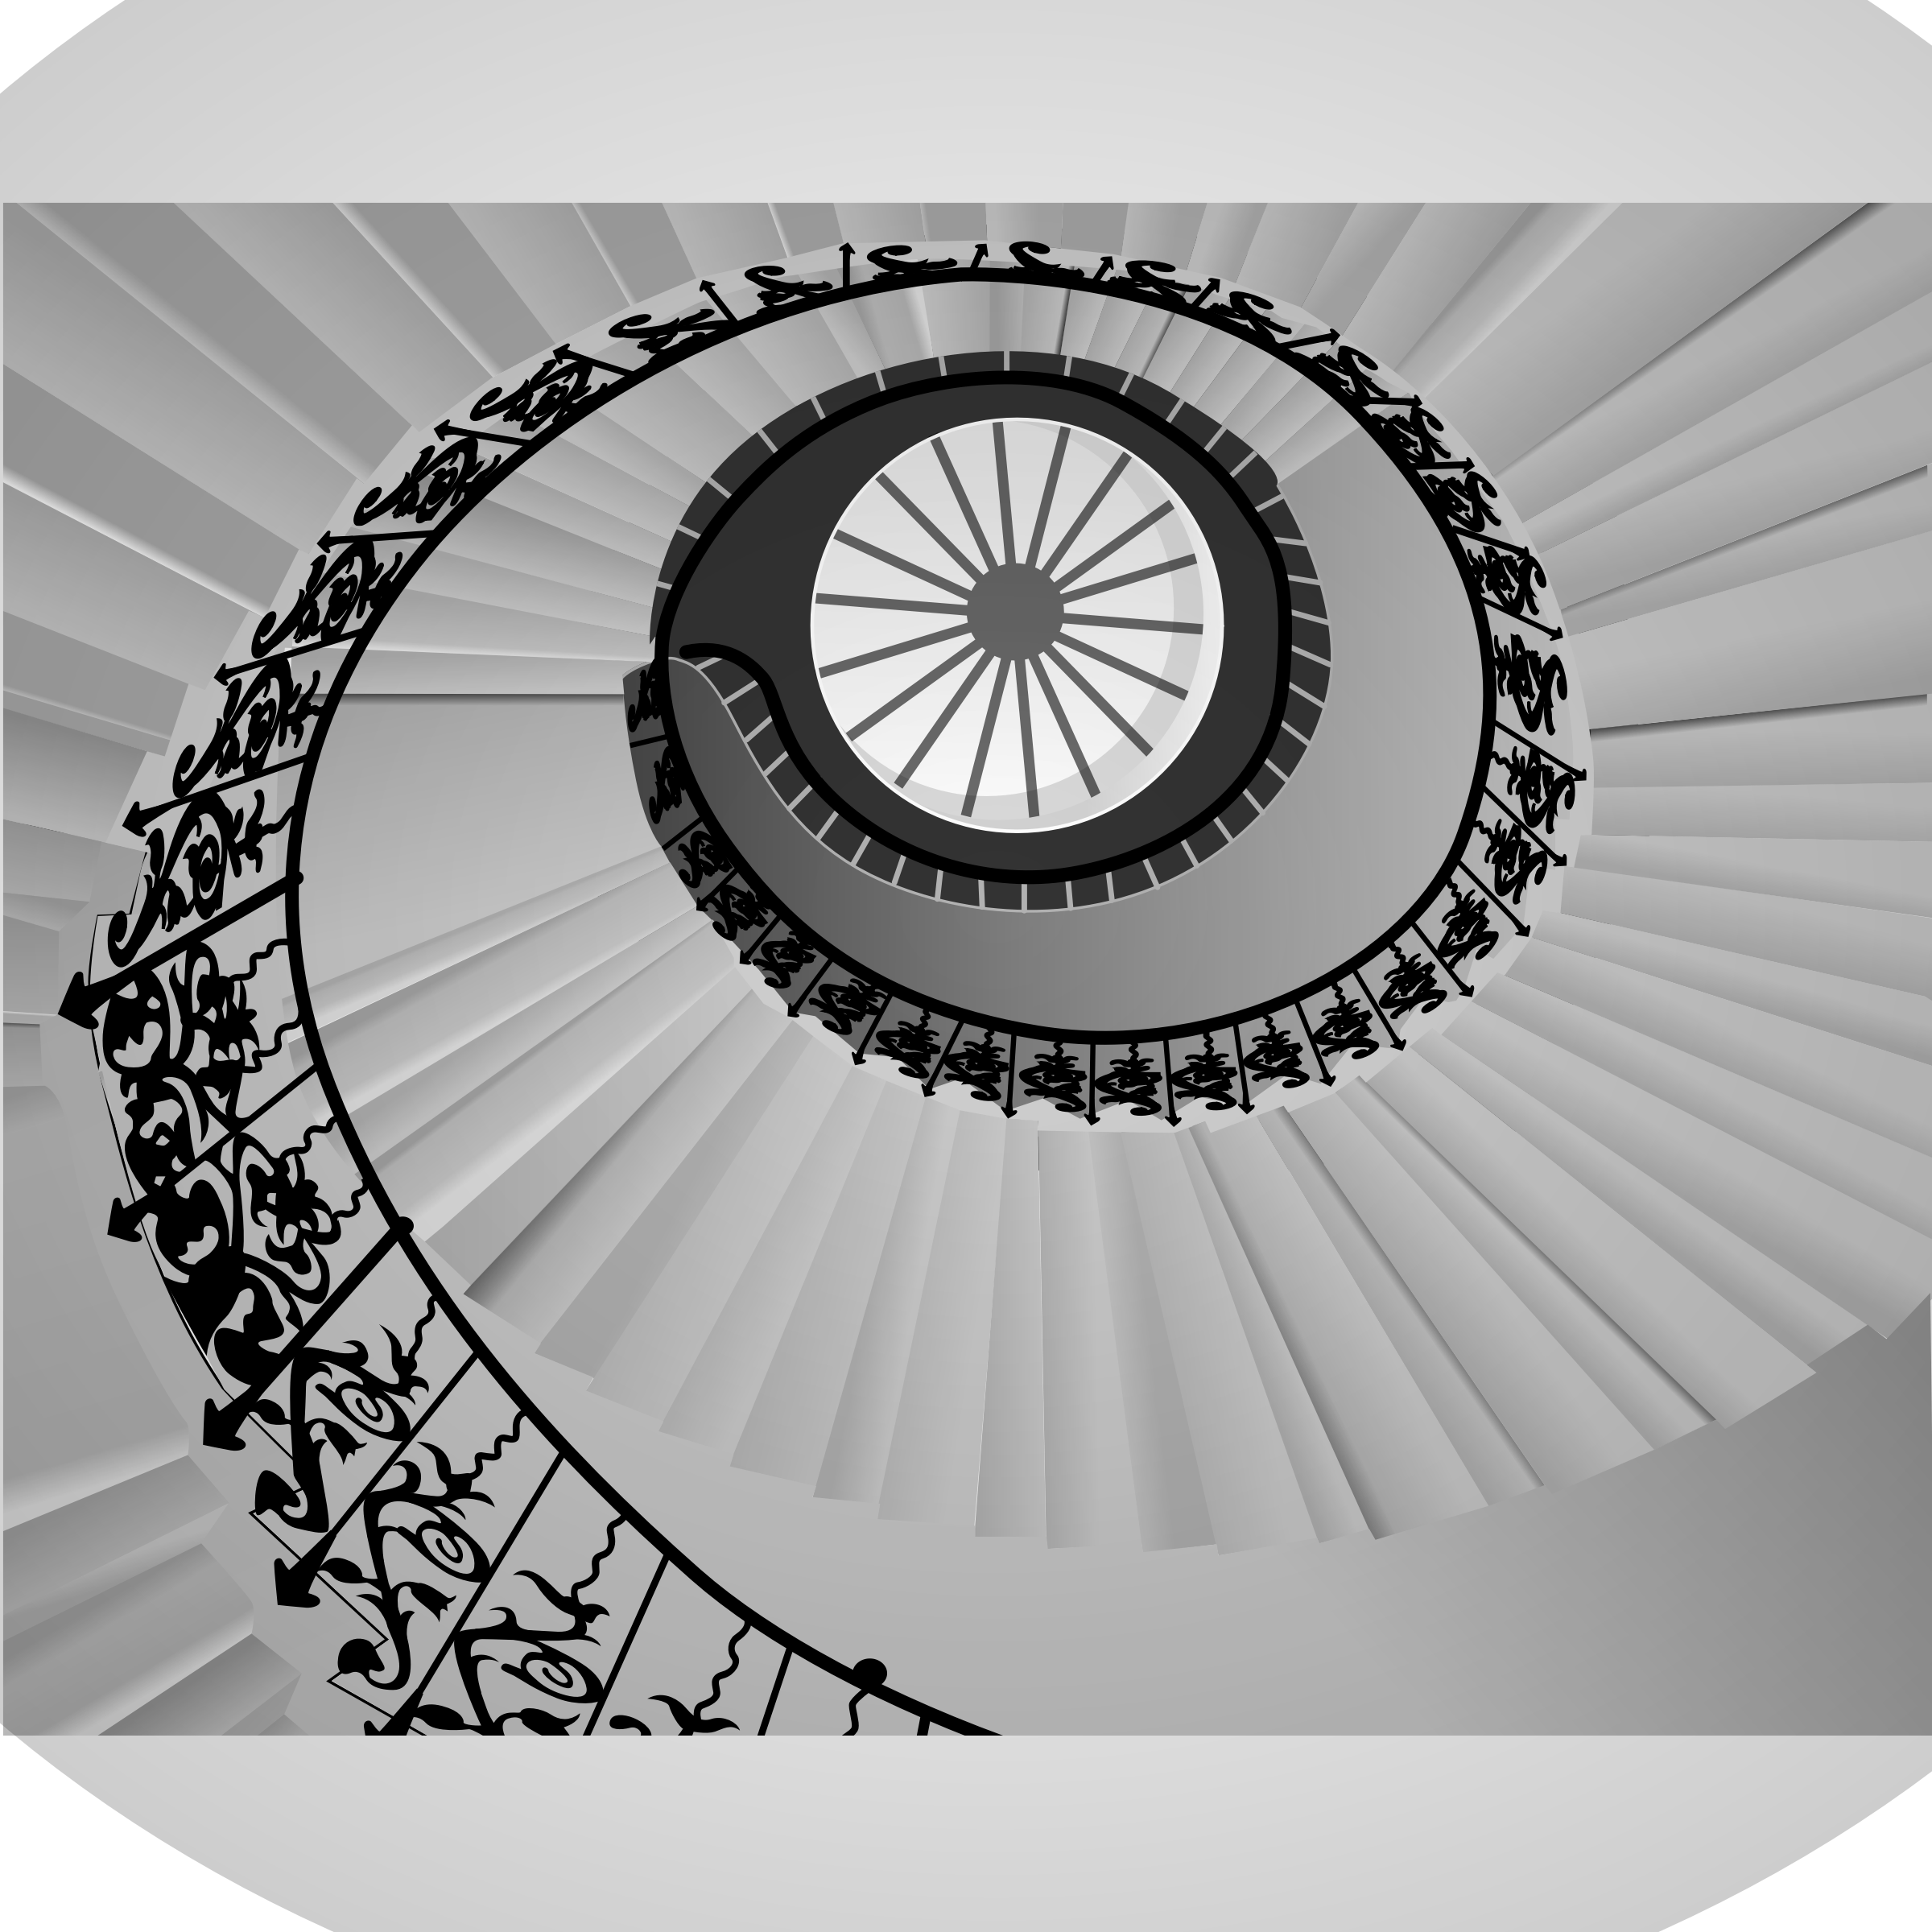 Spiral staircase by Gespenst